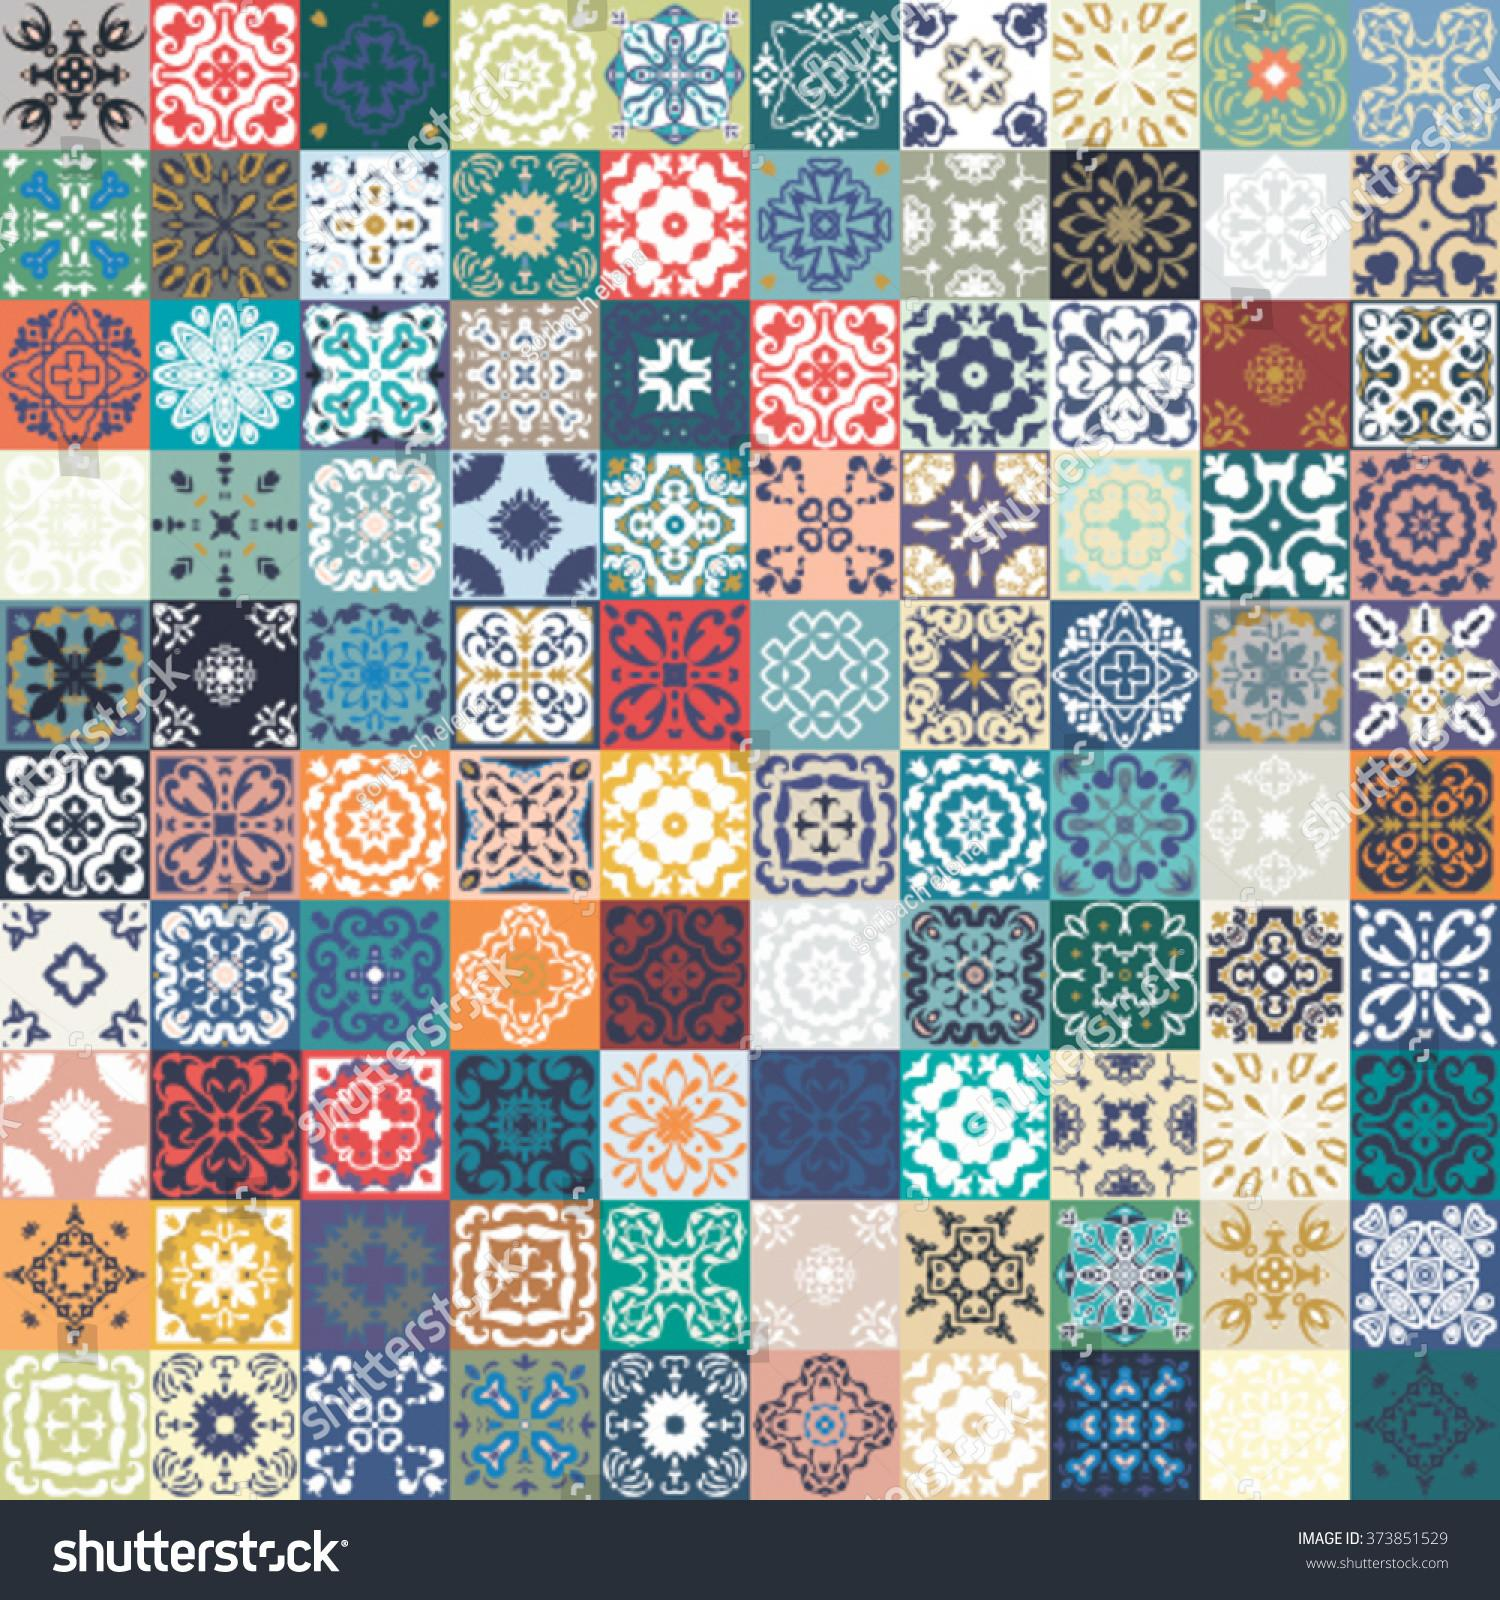 Floral Patchwork Tile Design Colorful Moroccan Stock